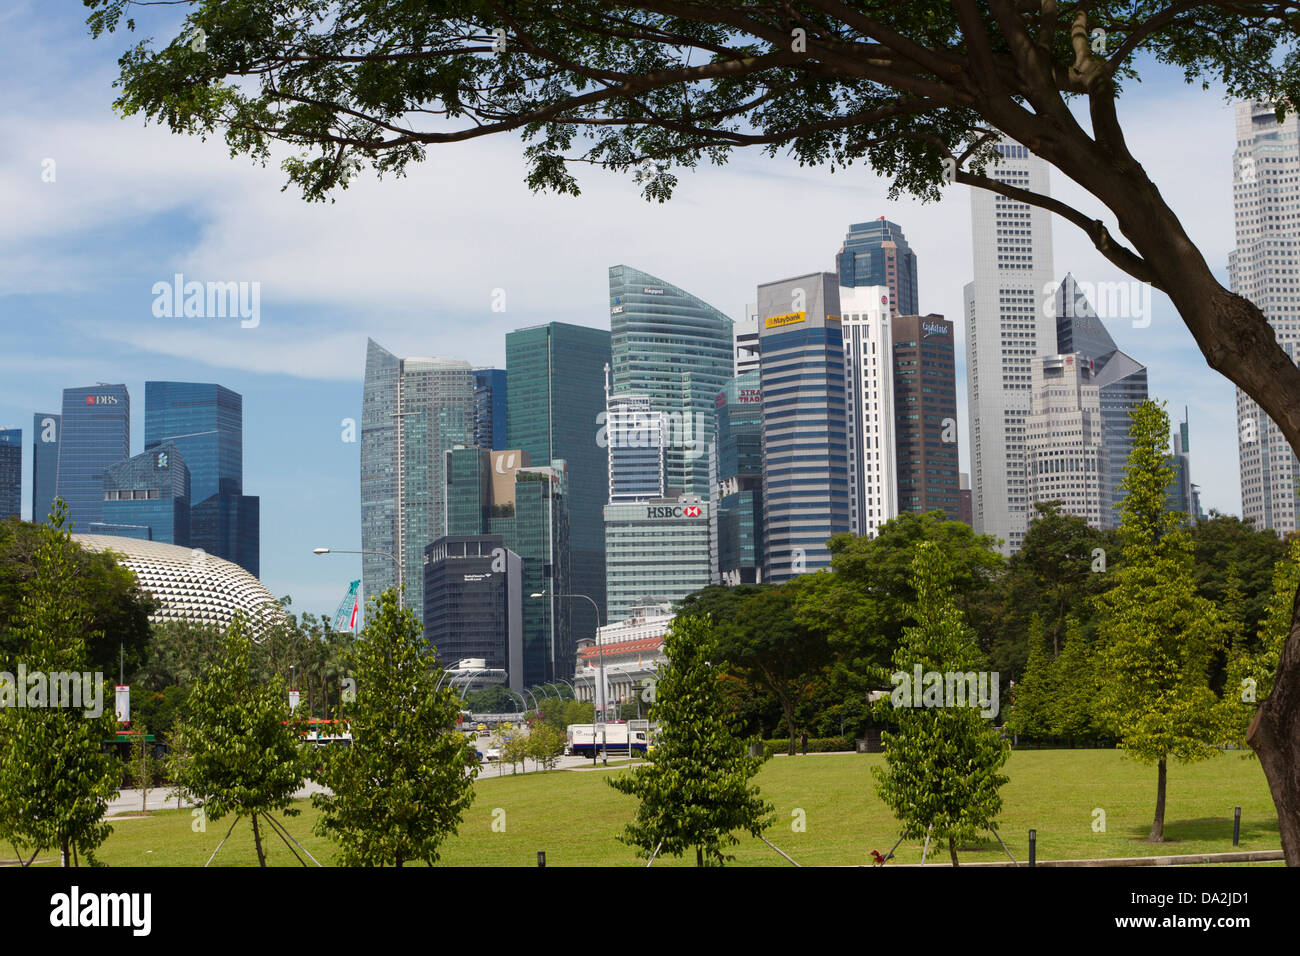 Financial/business district and banks framed by trees, Singapore - Stock Image